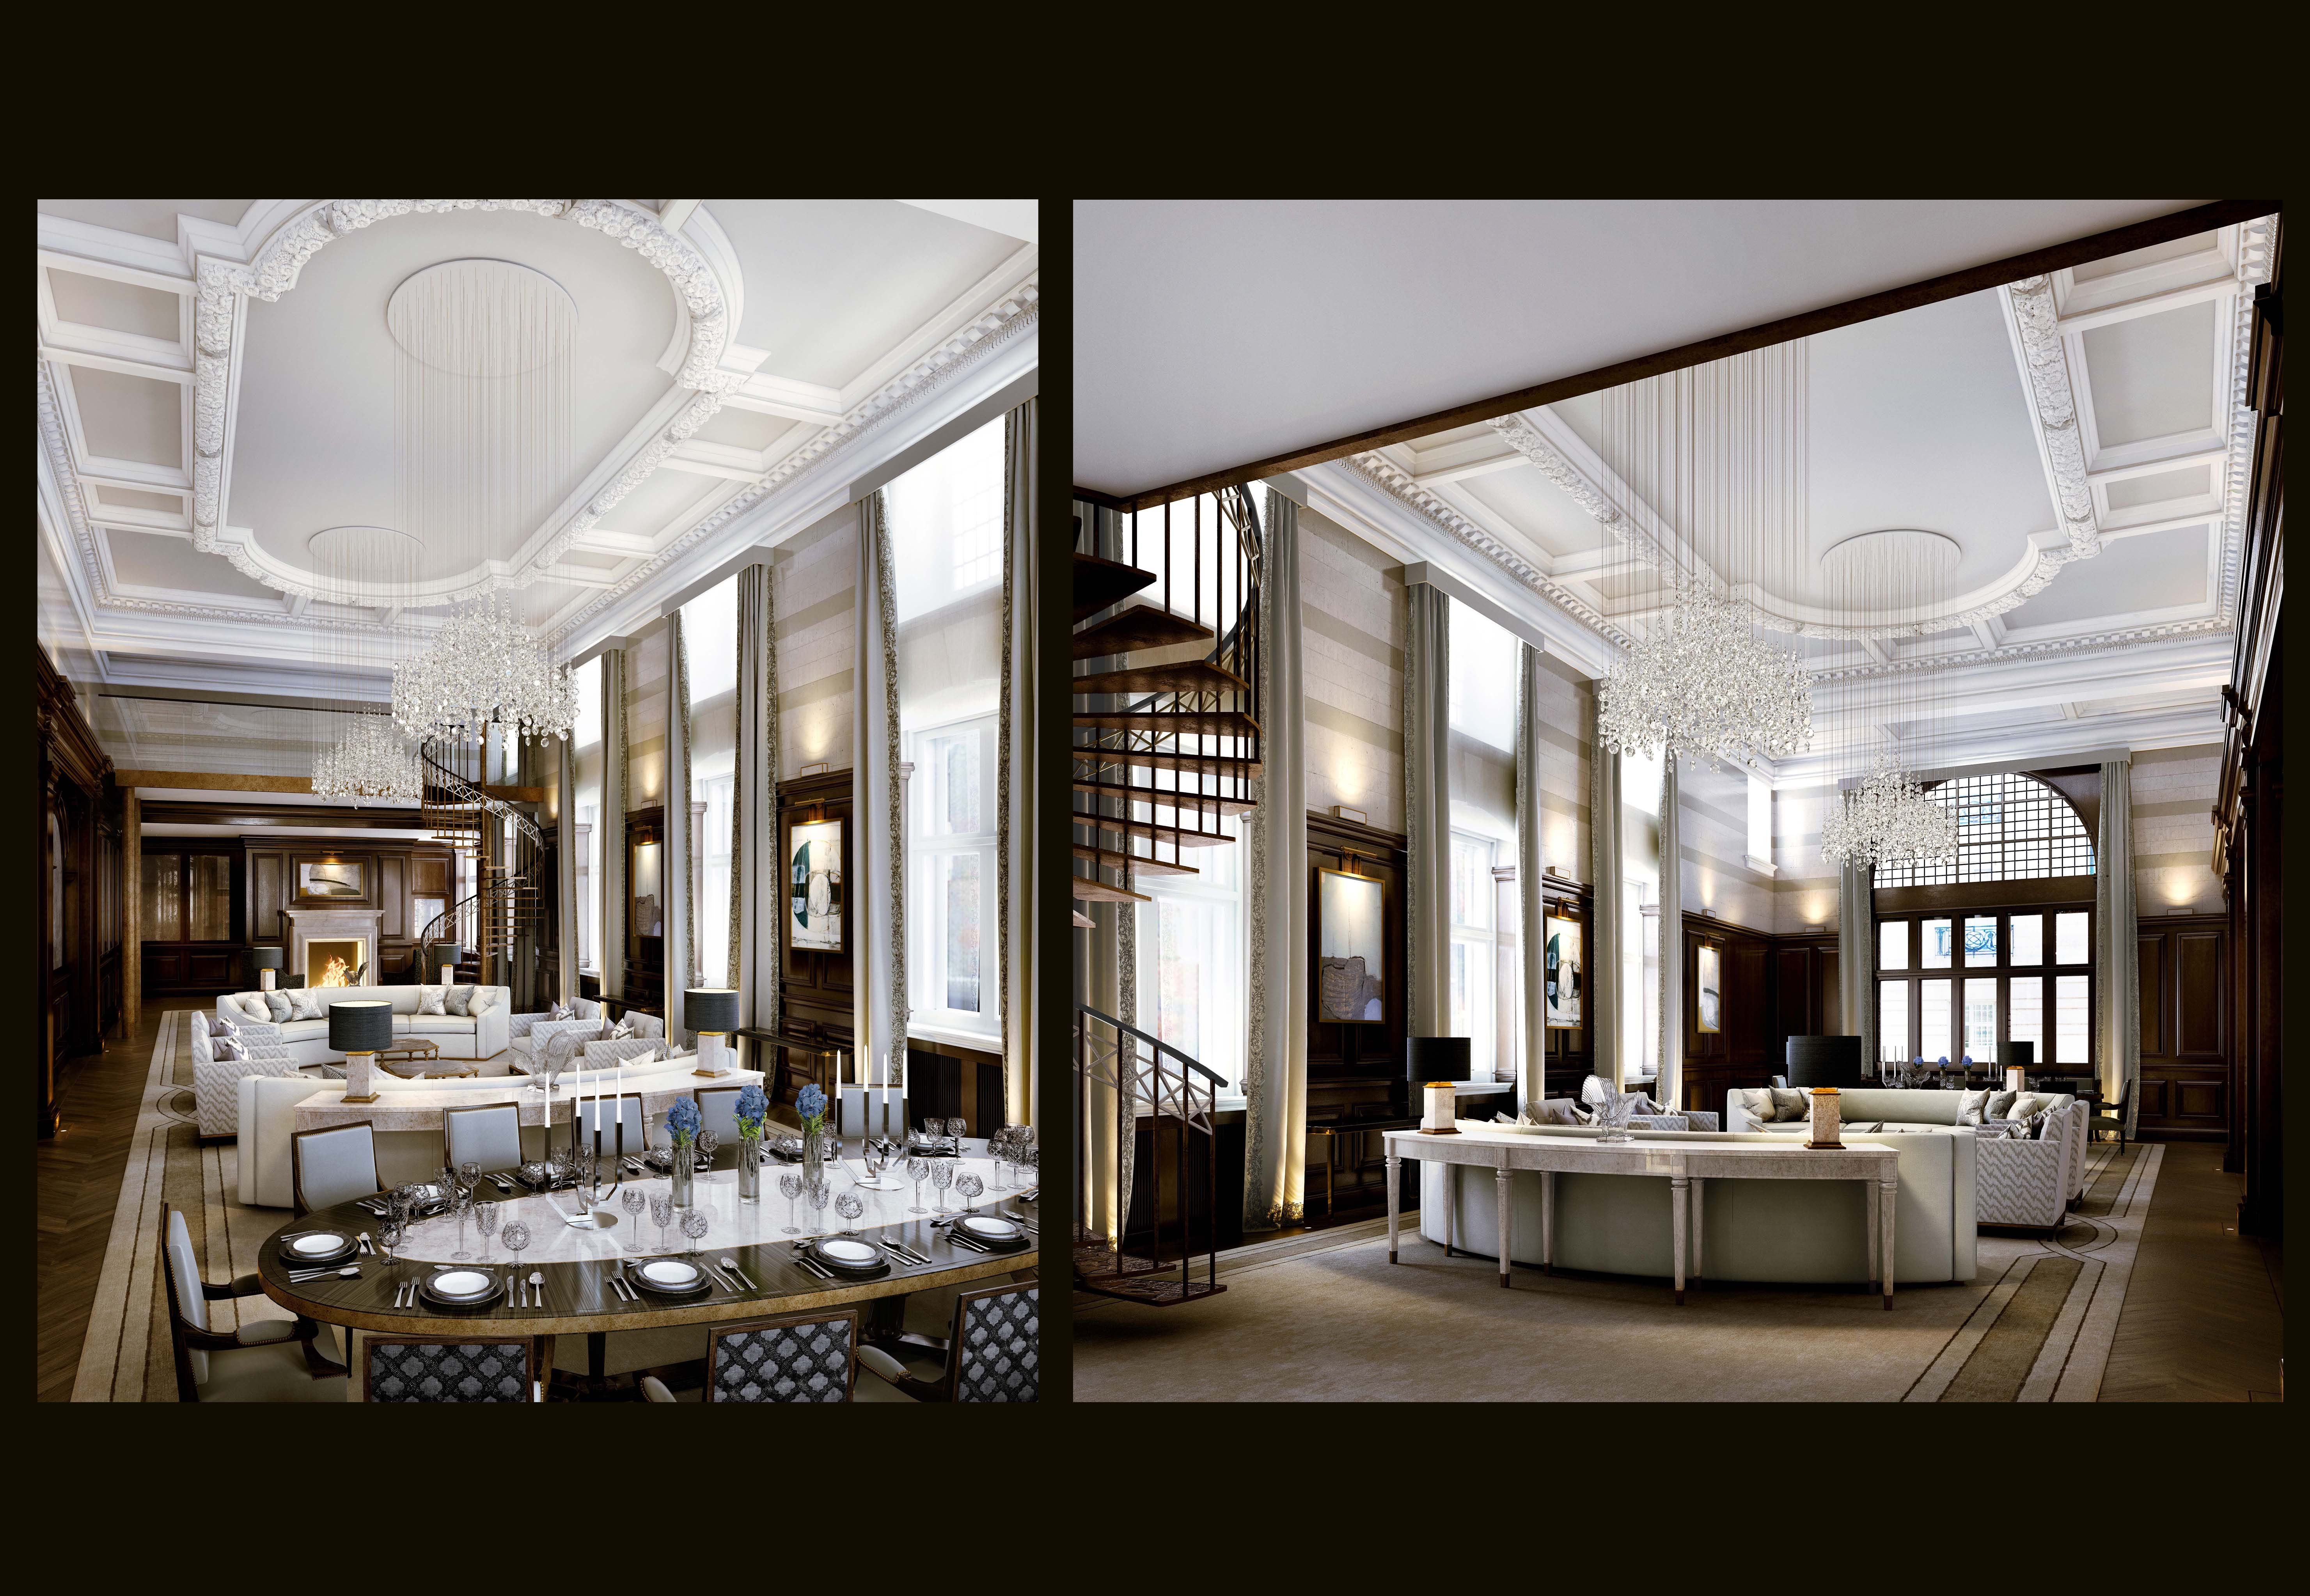 Interior architecture firms london for Design companies london